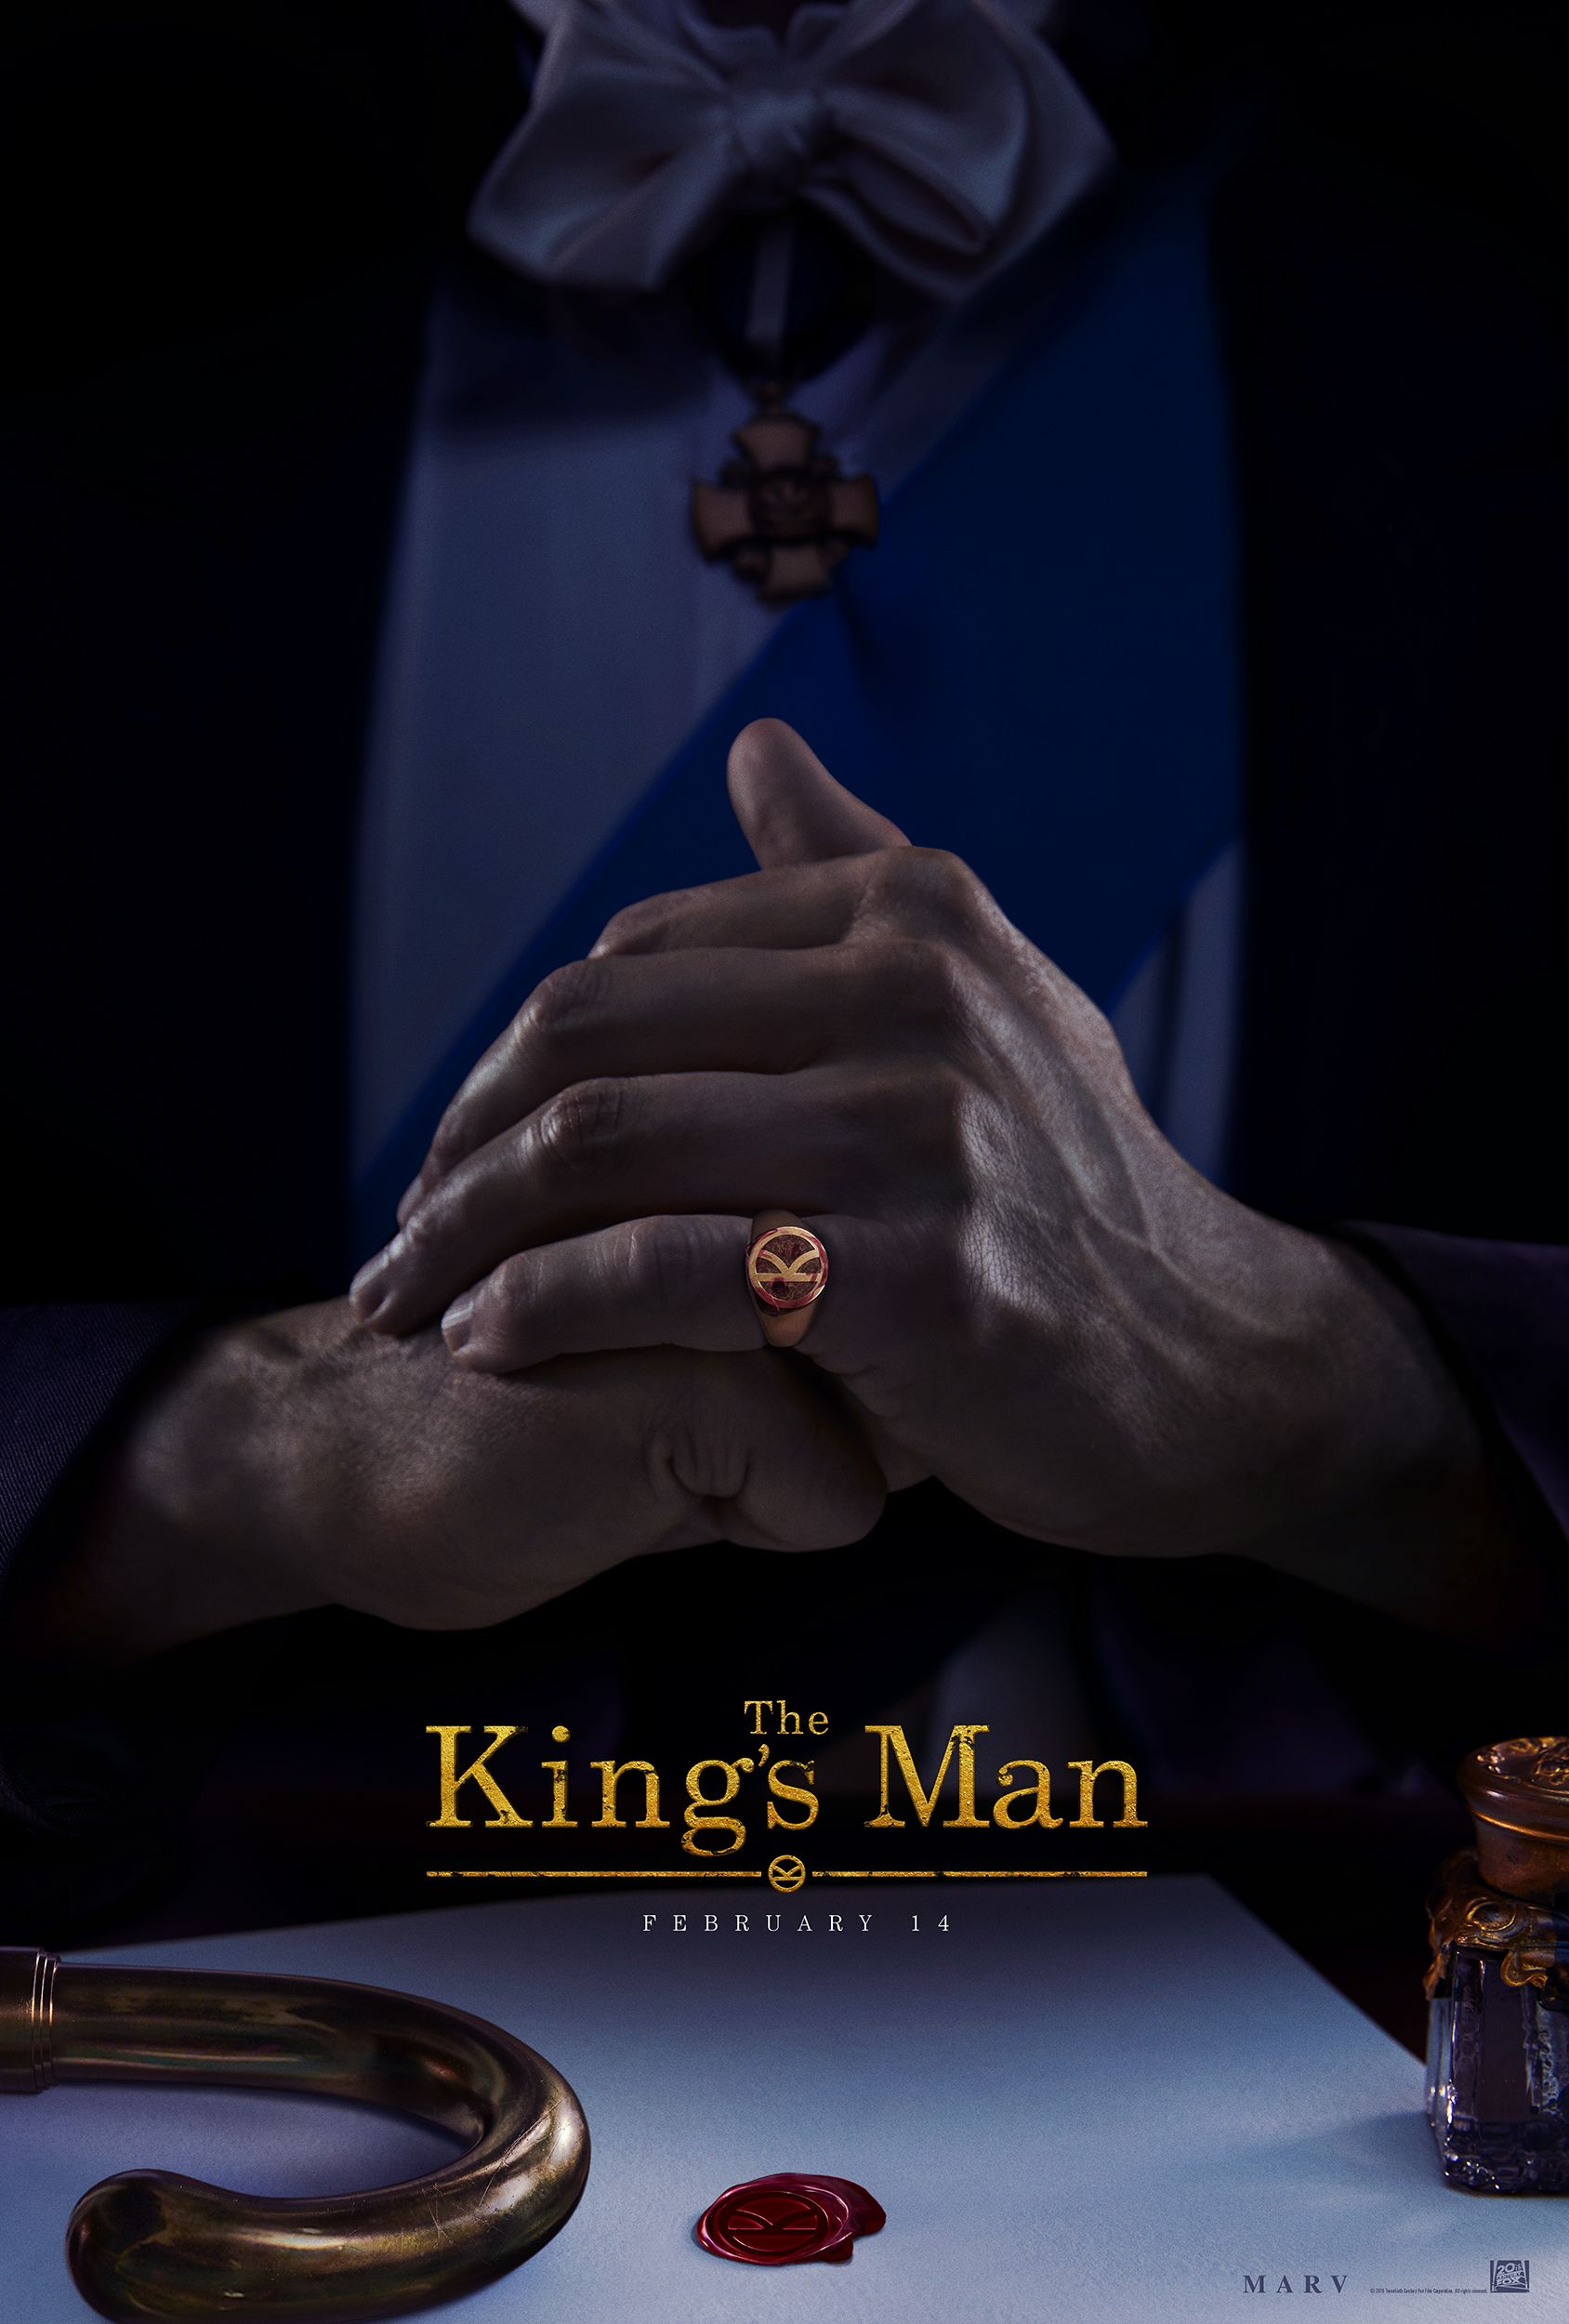 Kingsman Prequel Trailer and Poster Reveal WWI-Set The